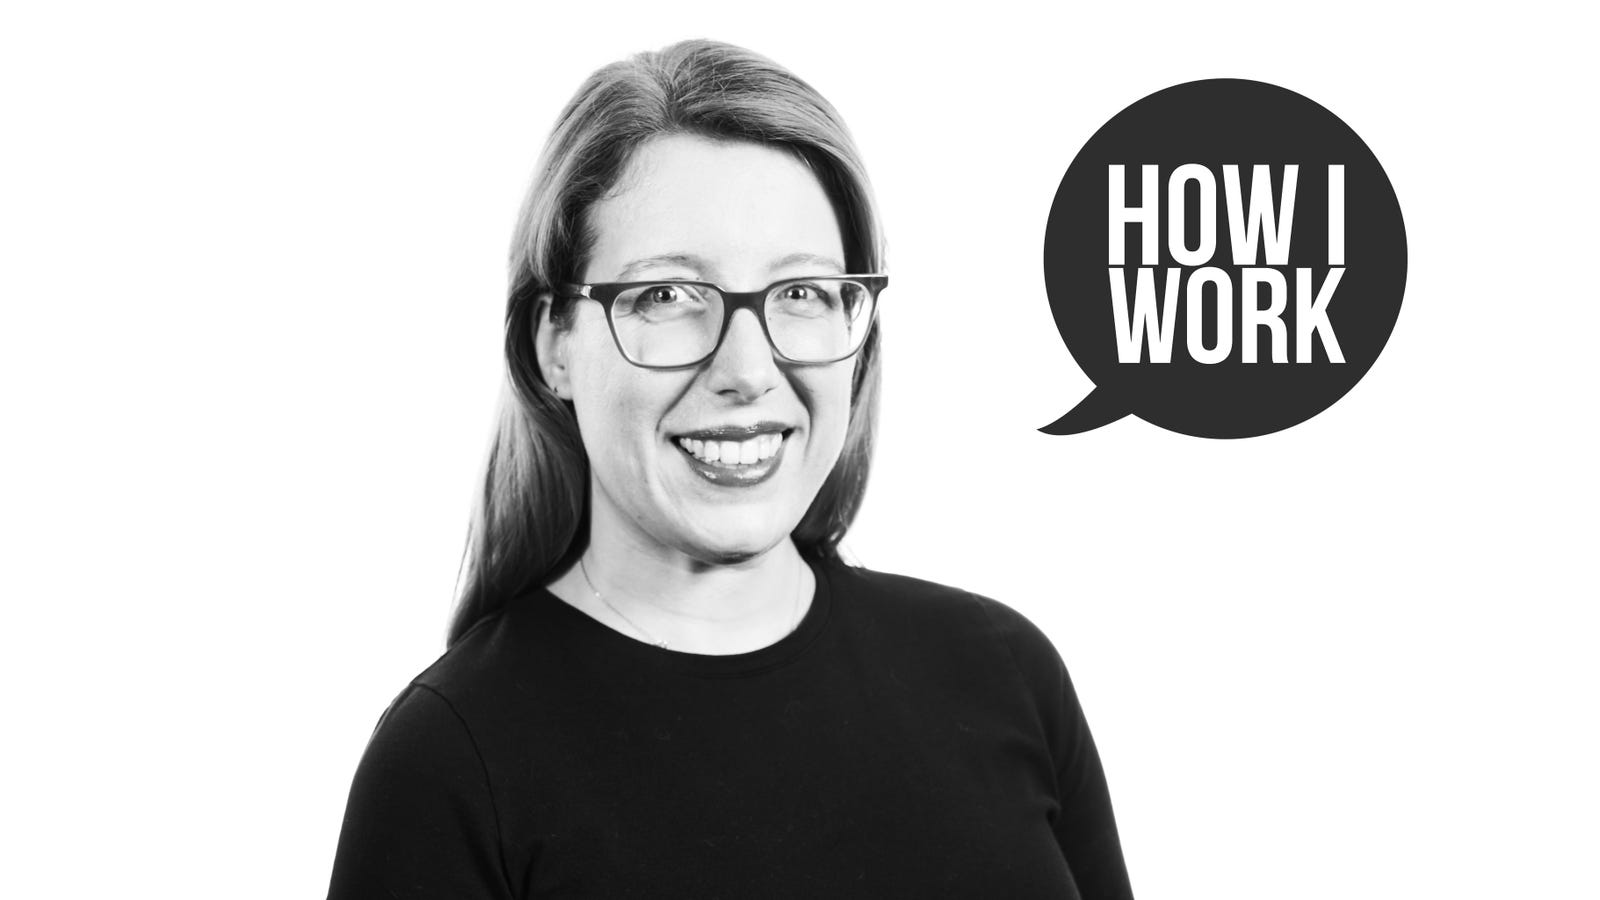 I'm Lisa Rowan, Lifehacker Staff Writer, and This is How I Work